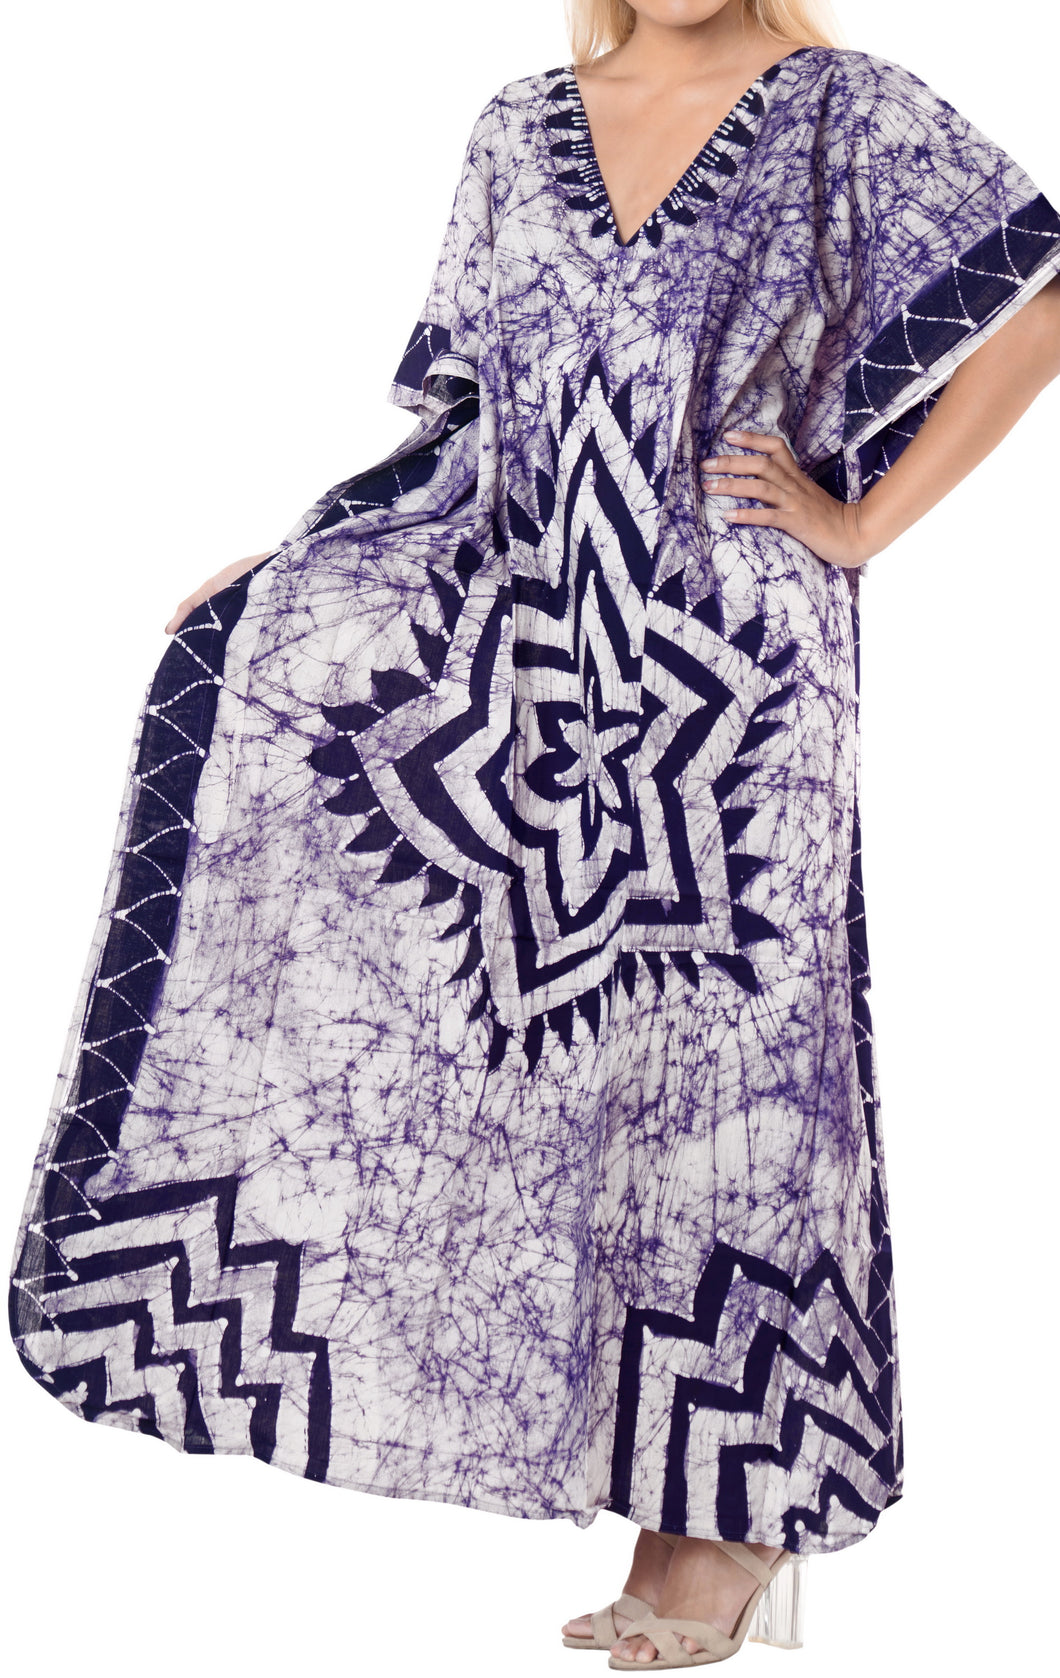 LA LEELA Lounge Cotton Batik Maxi Cover Up Aloha Caftan Violet 148 Plus Size